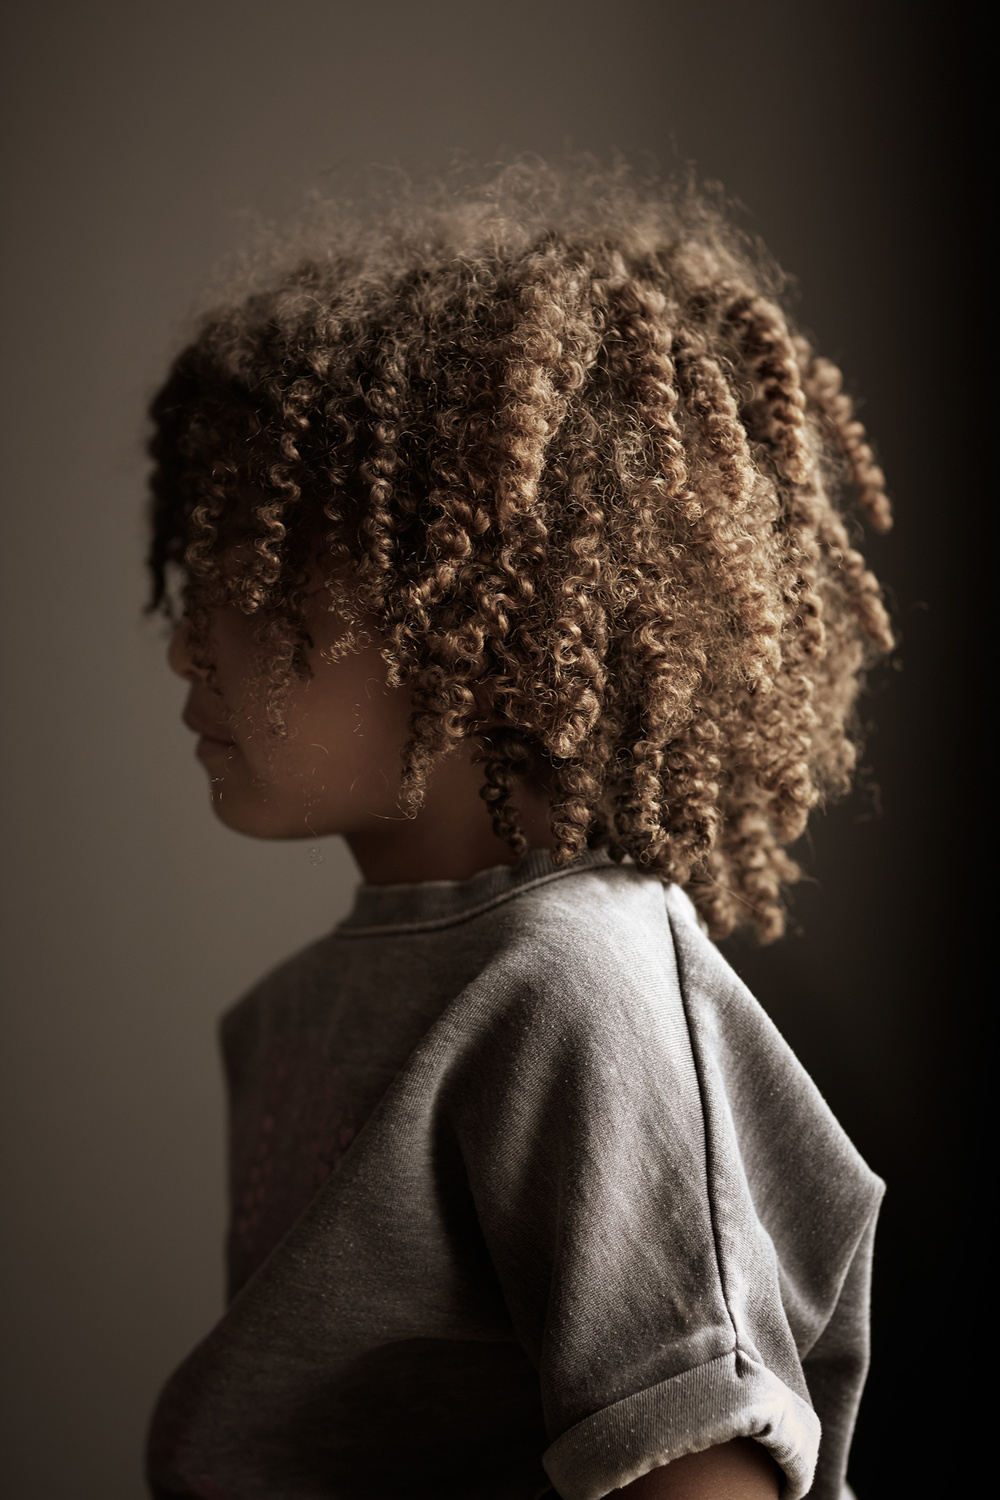 Portrait Photography Derek Israelsen Profile Kid Curly Hair